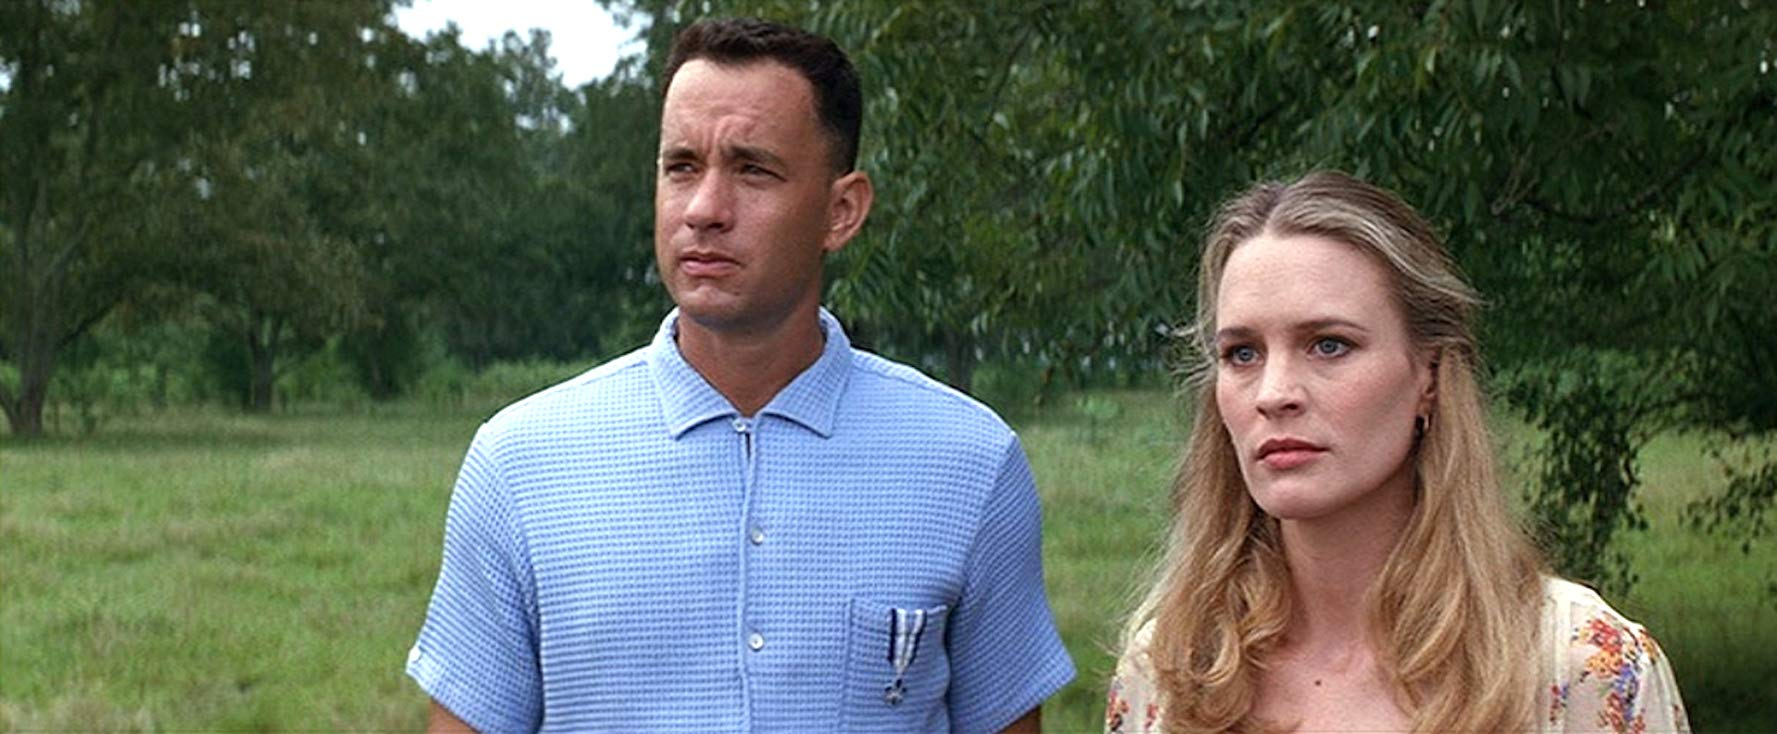 Case Against The Classics Forrest Gump The Georgetown Voice